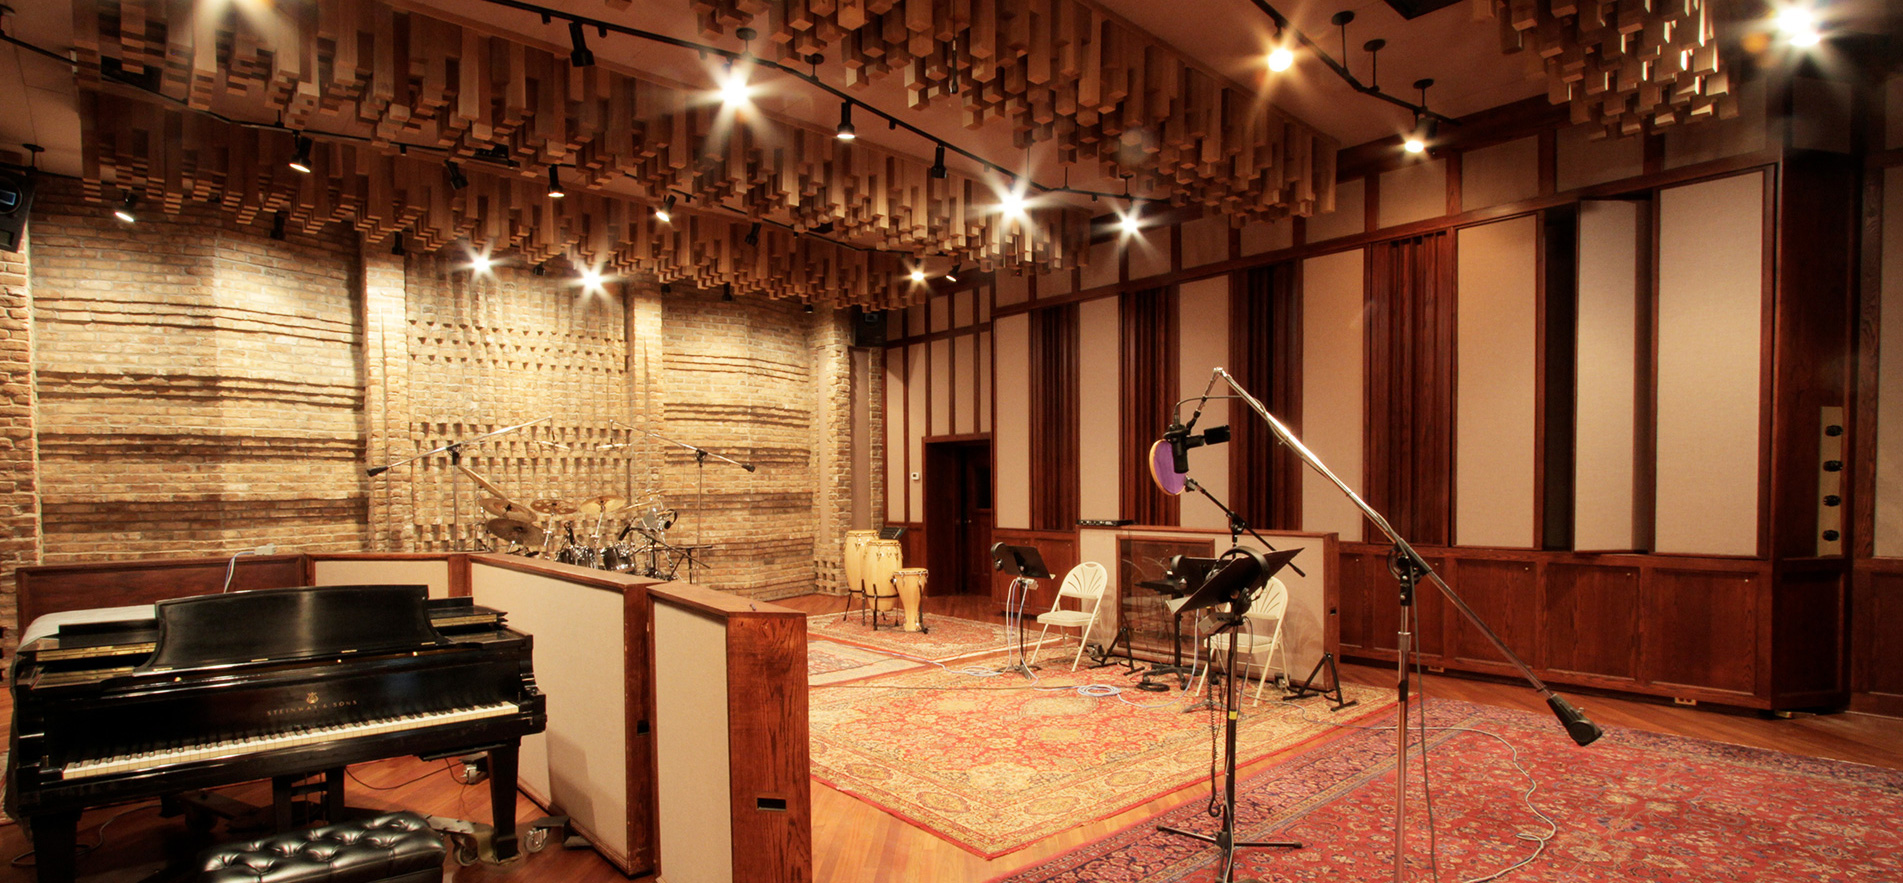 Studios at Linden Oaks Music Production